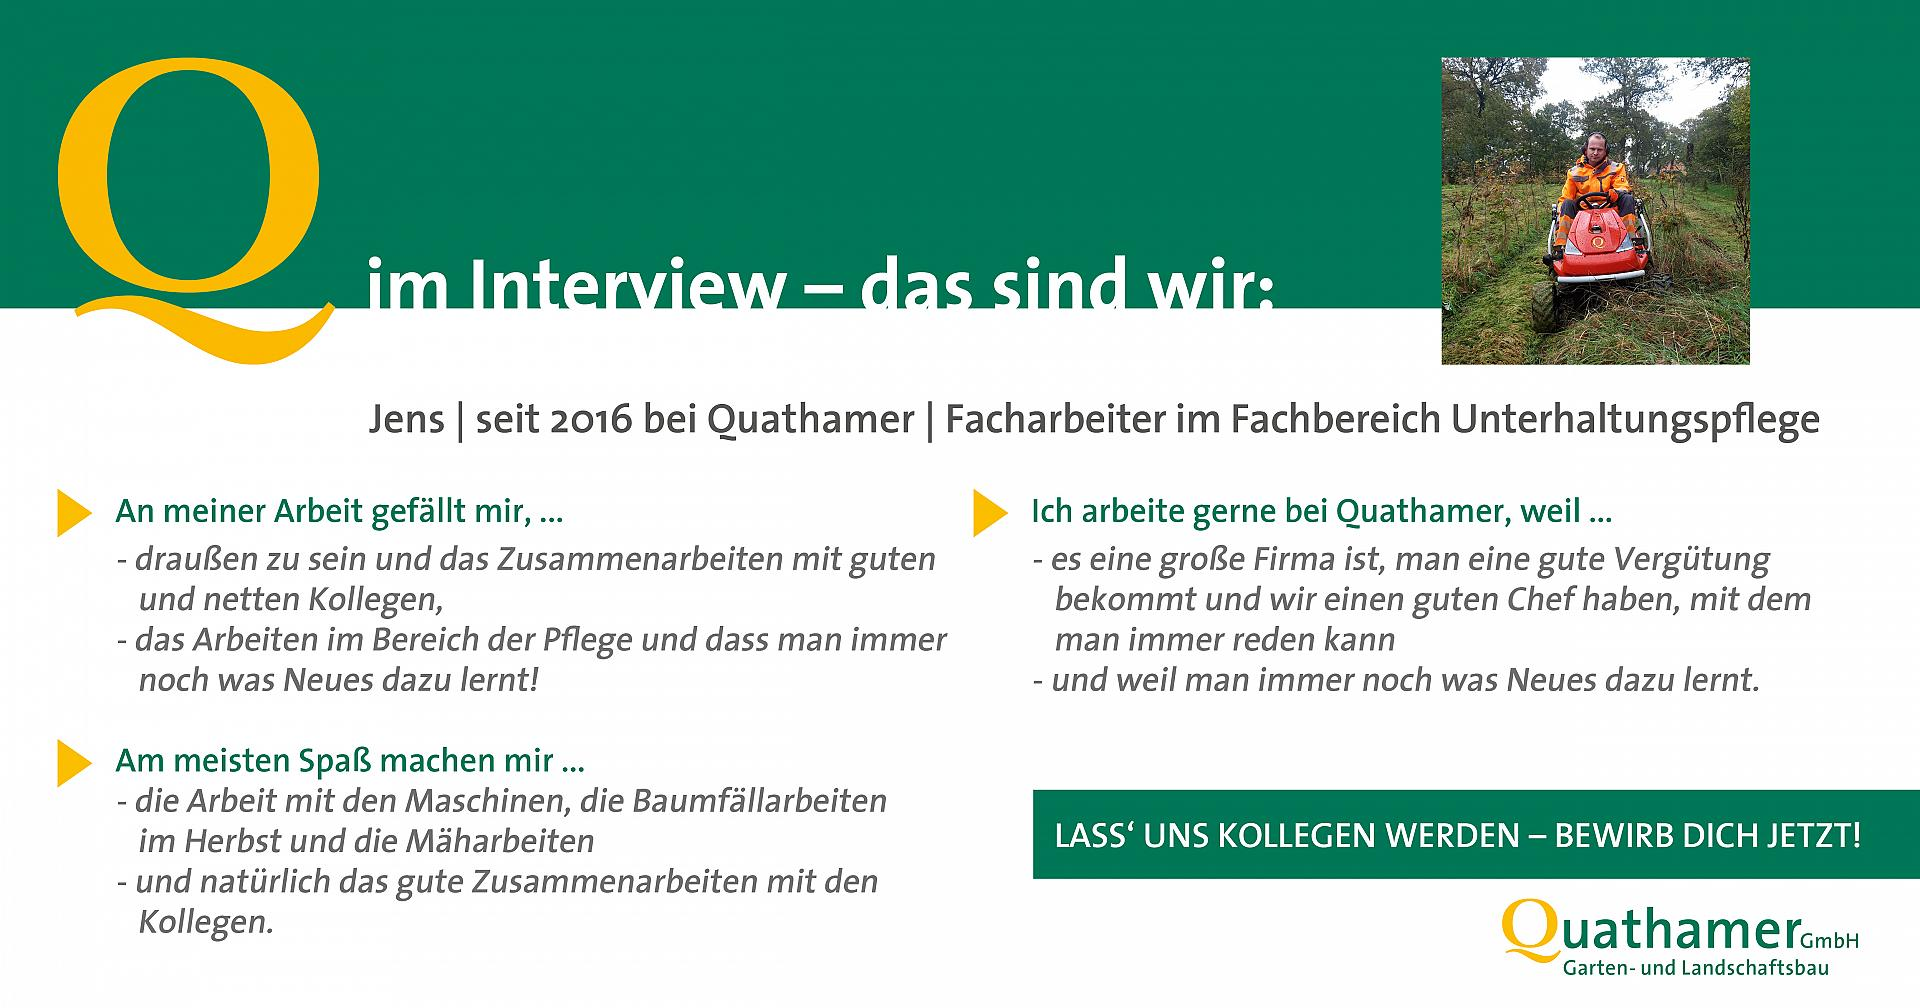 Interview mit Jens